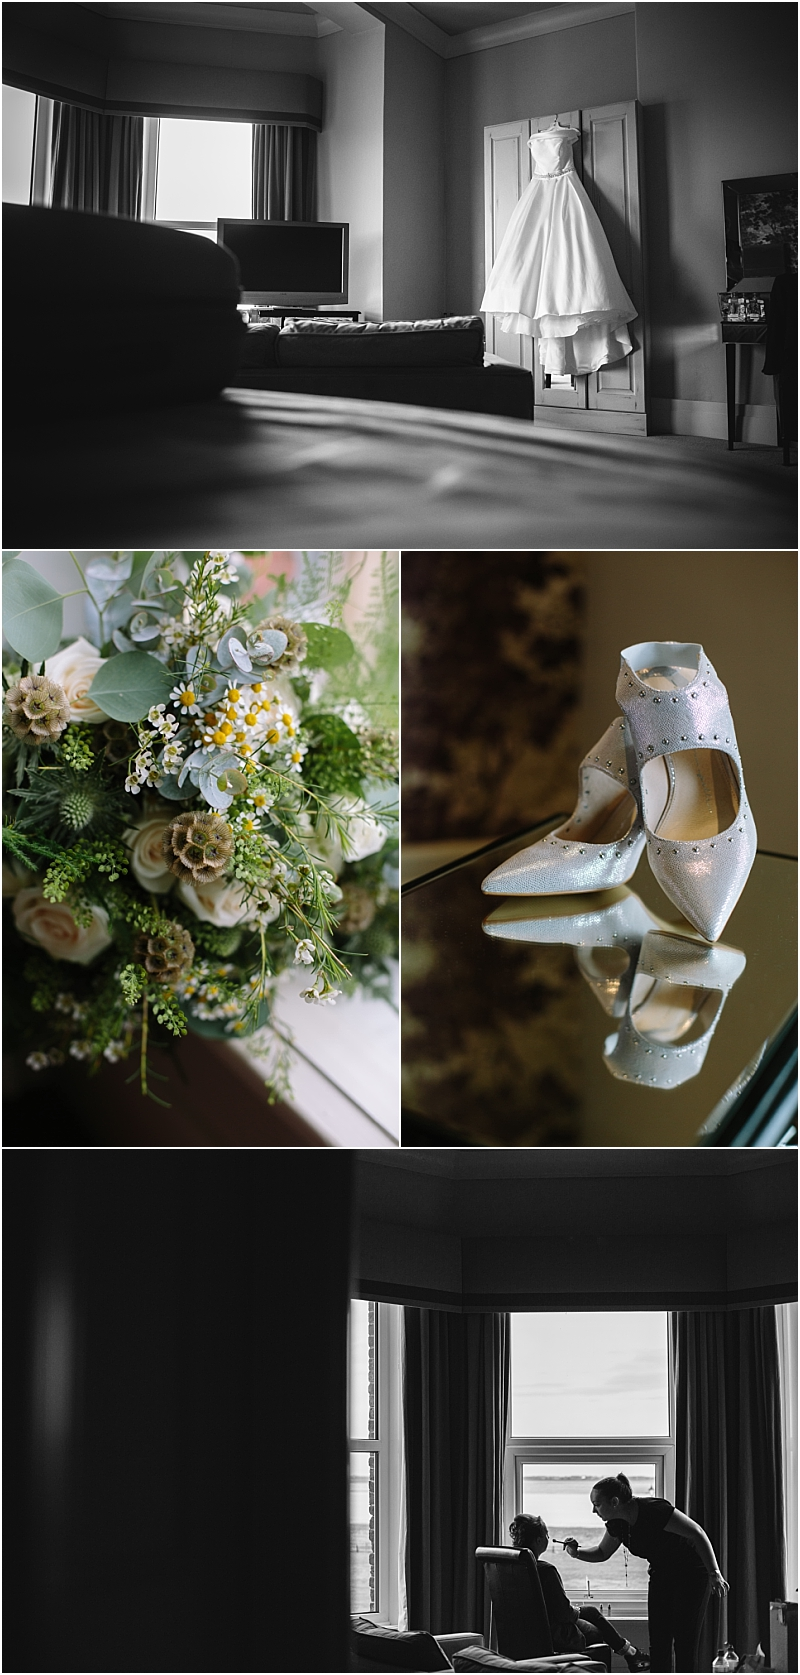 Wedding photographer Clifton Arms Lytham